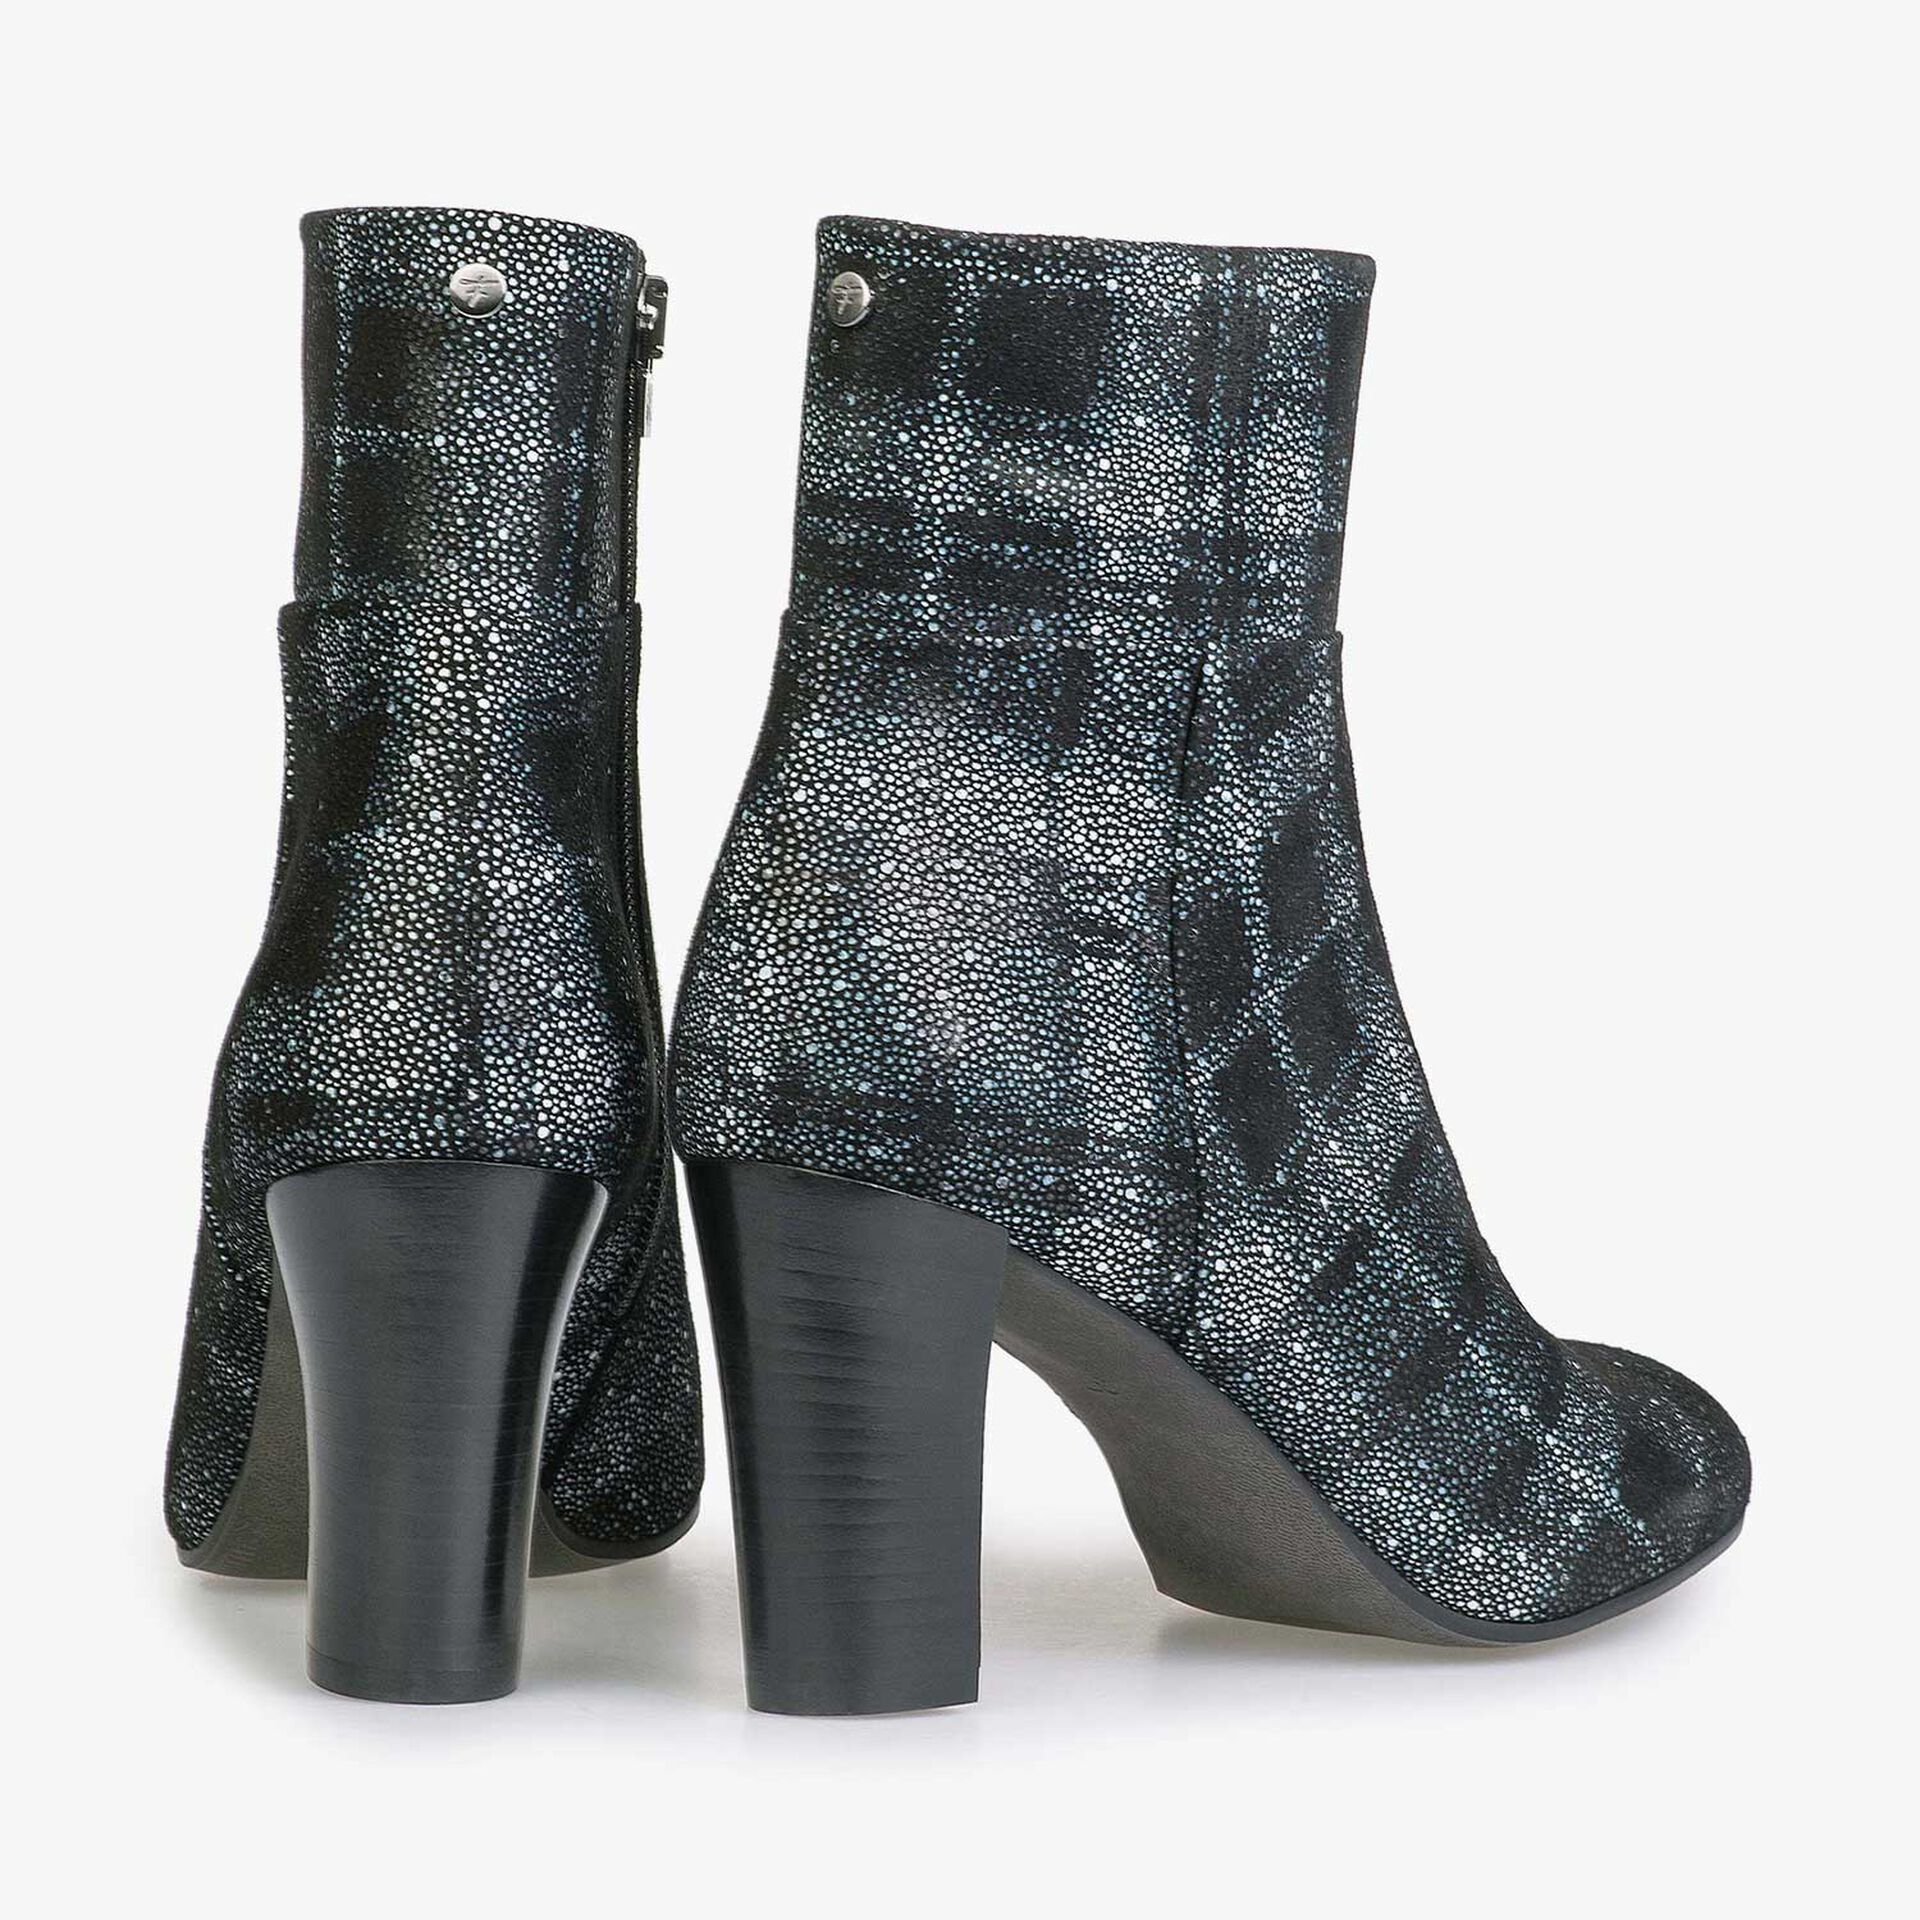 Ankle boot with black-blue check pattern